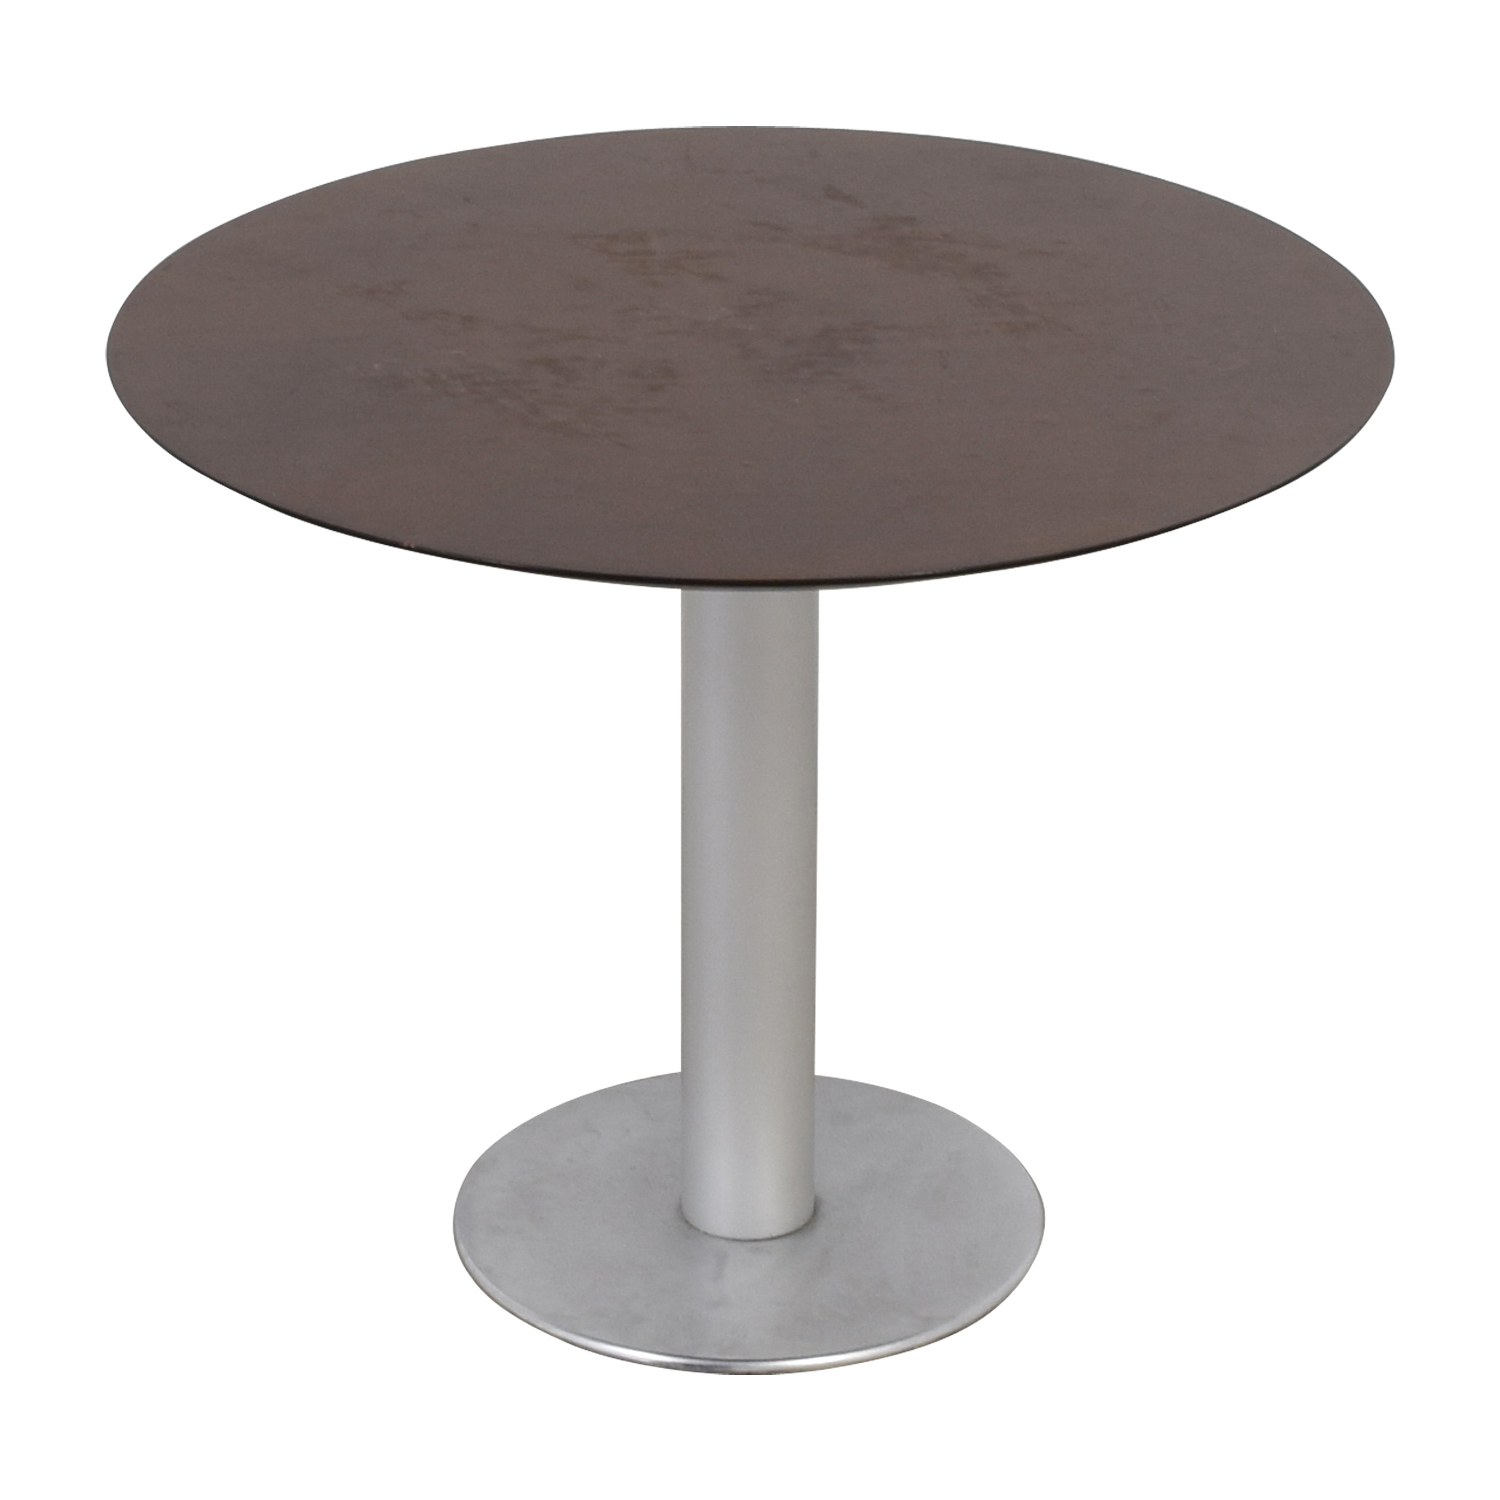 Stua Stua Zero Wood and Chrome Round Table dimensions